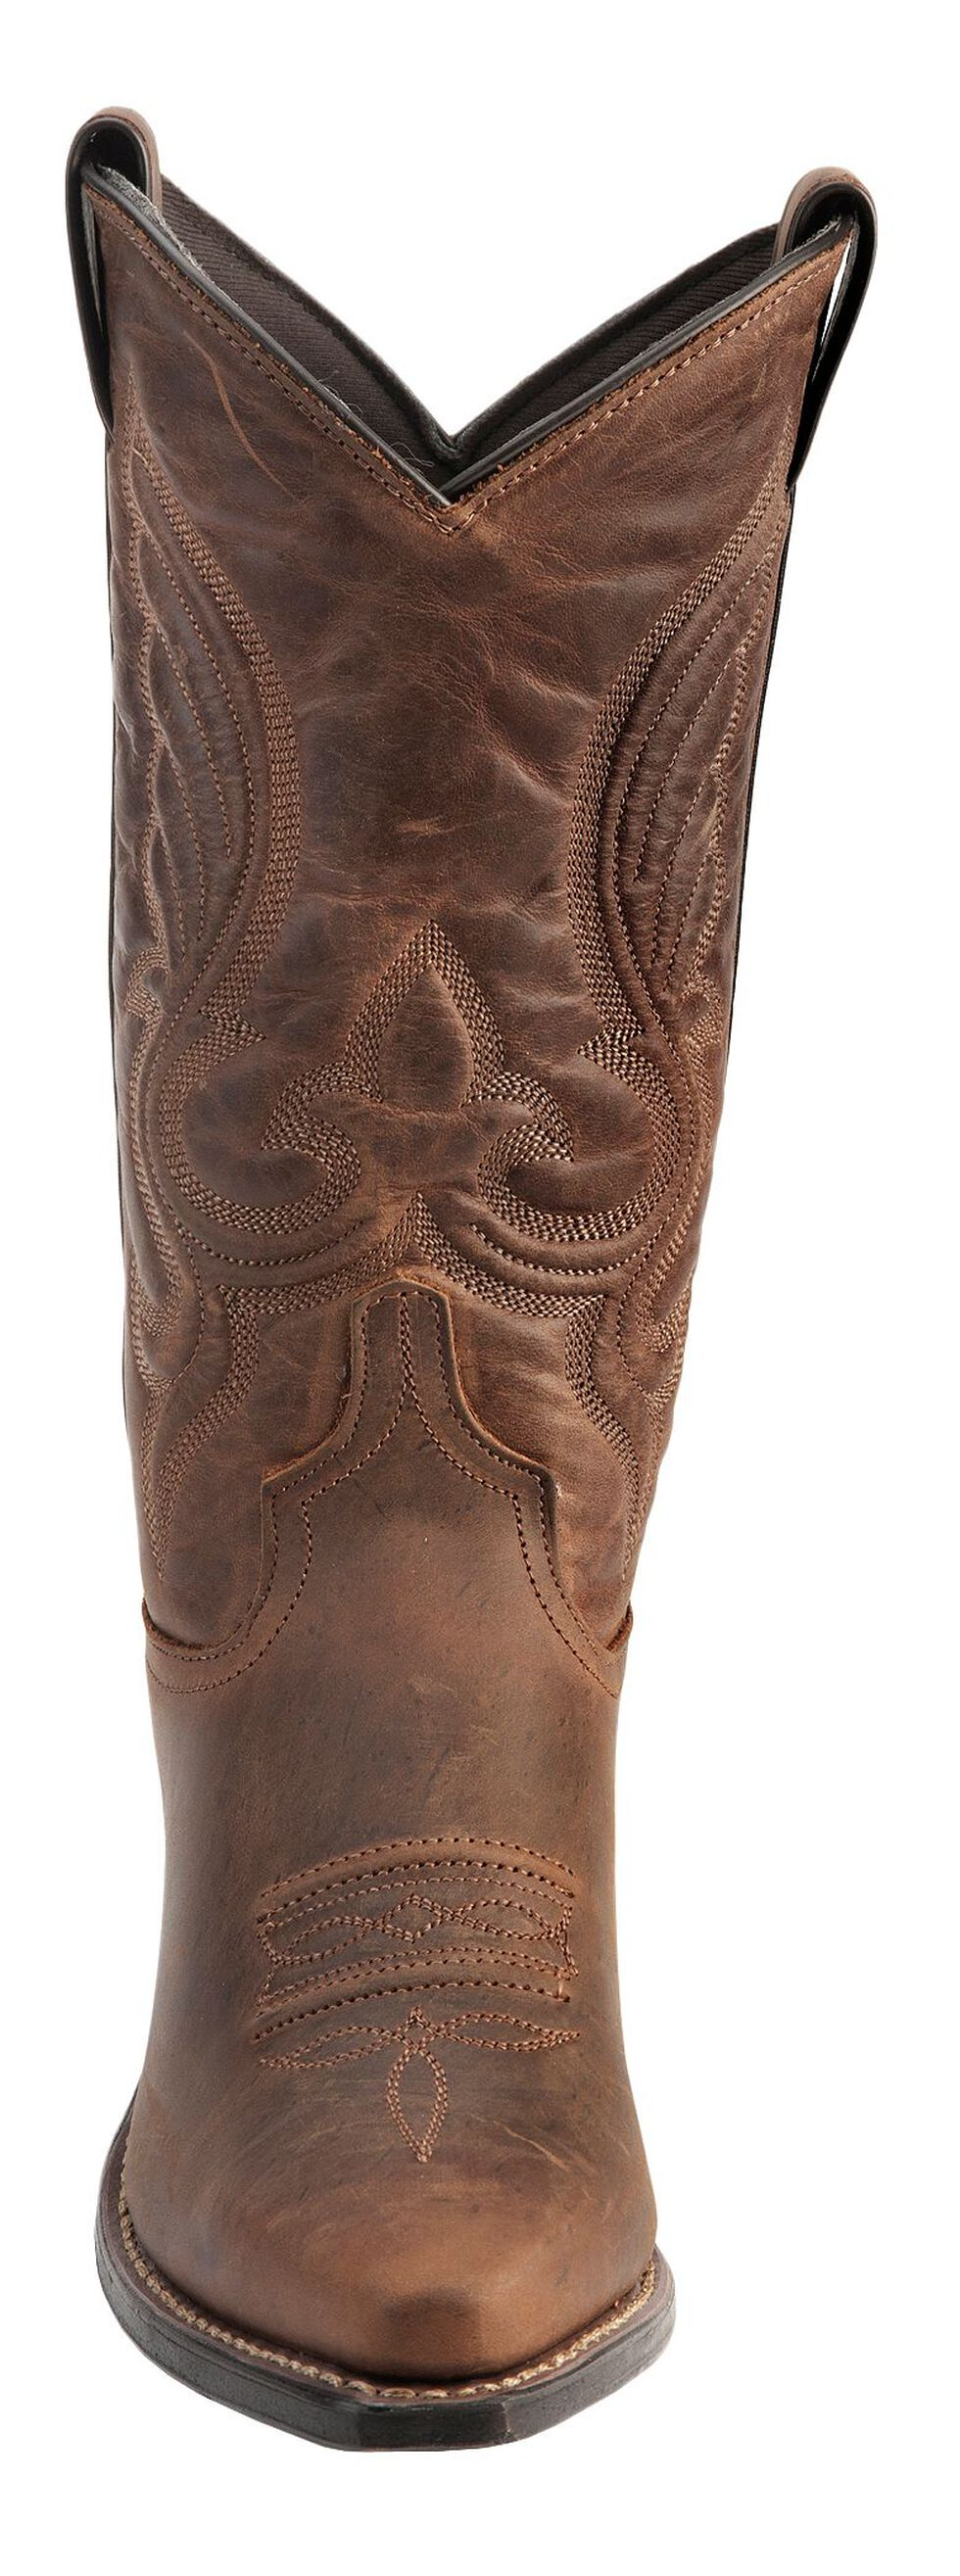 Abilene Cowhide Cowgirl Boots - Snip Toe, Brown, hi-res